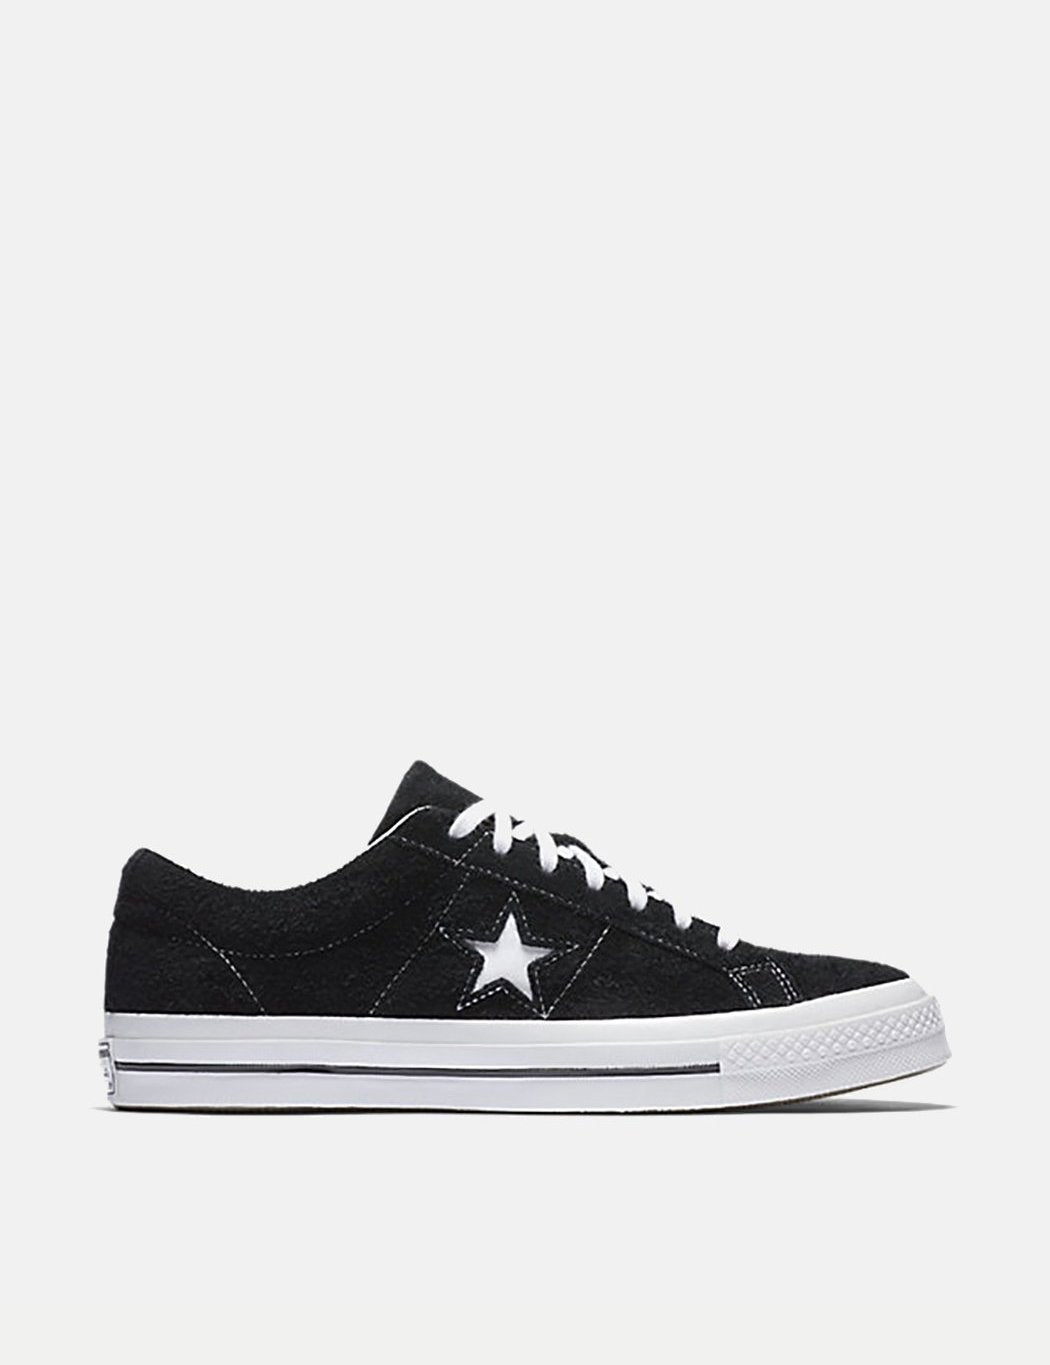 5f3c53cfaac4 Converse One Star Ox Low Suede (158369C) - Black White